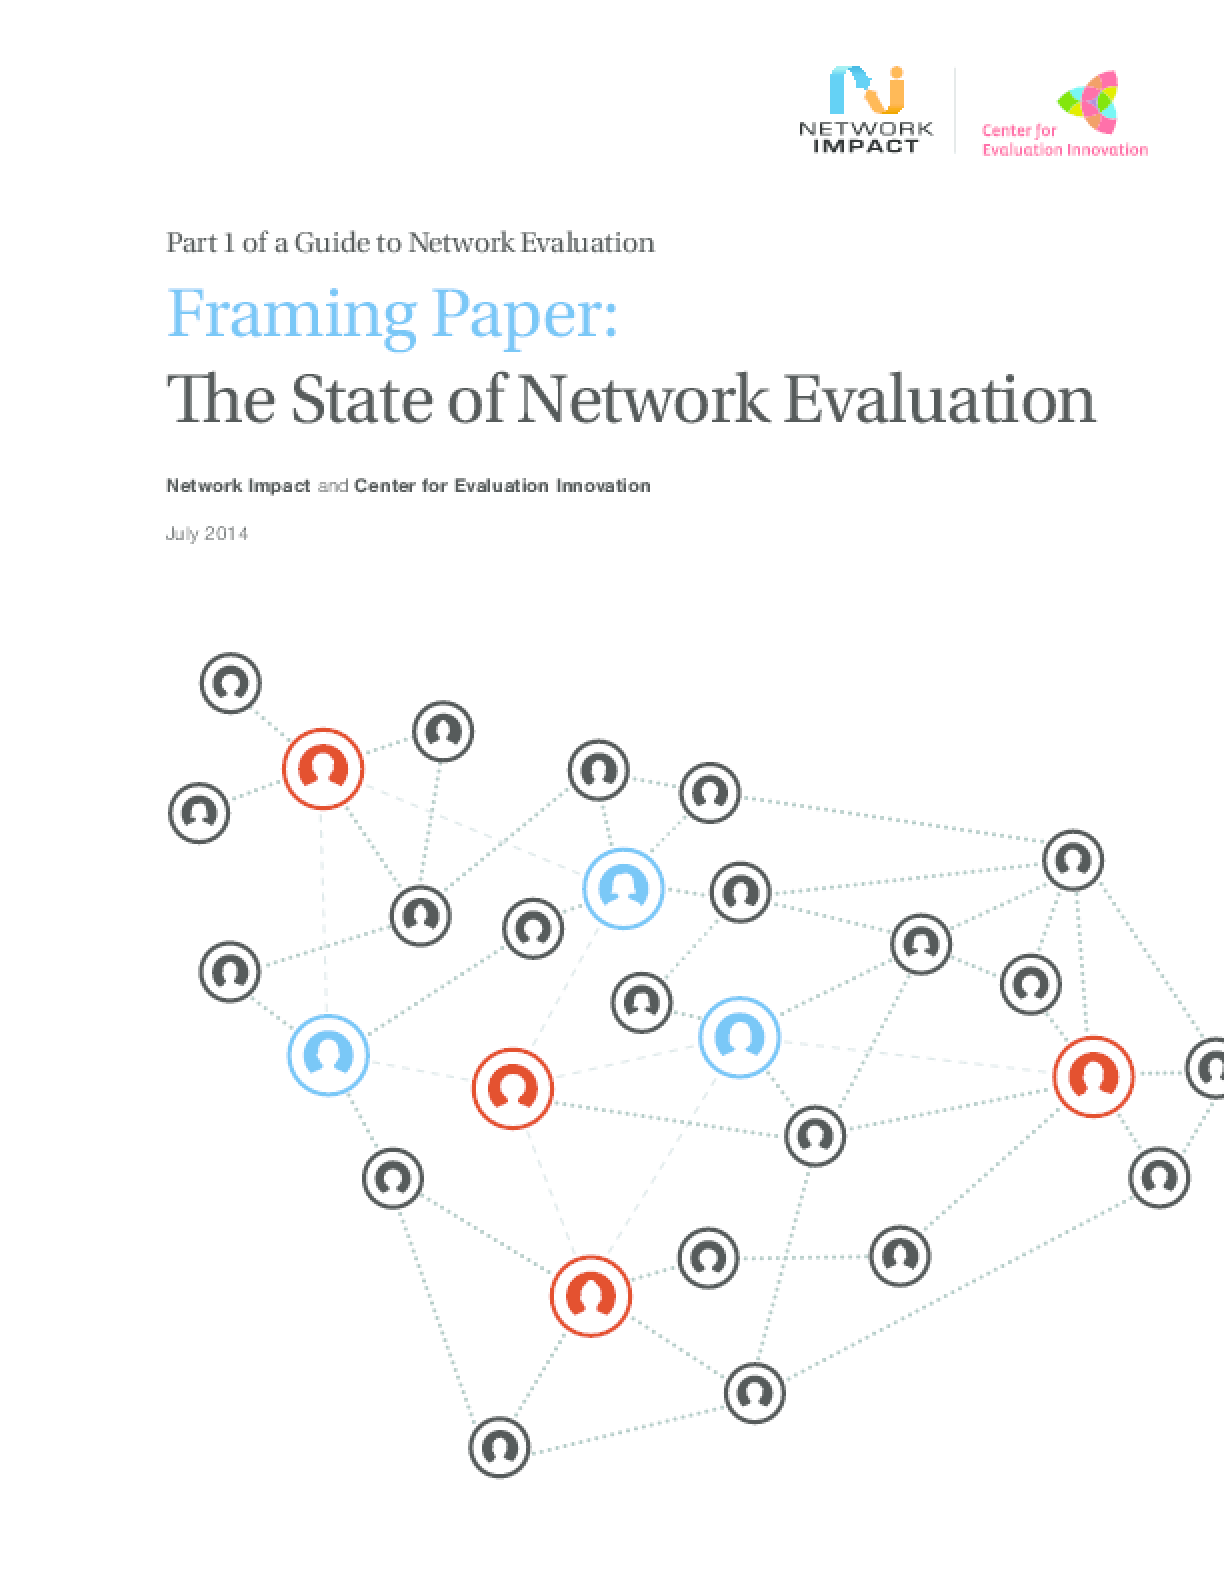 The State of Network Evaluation